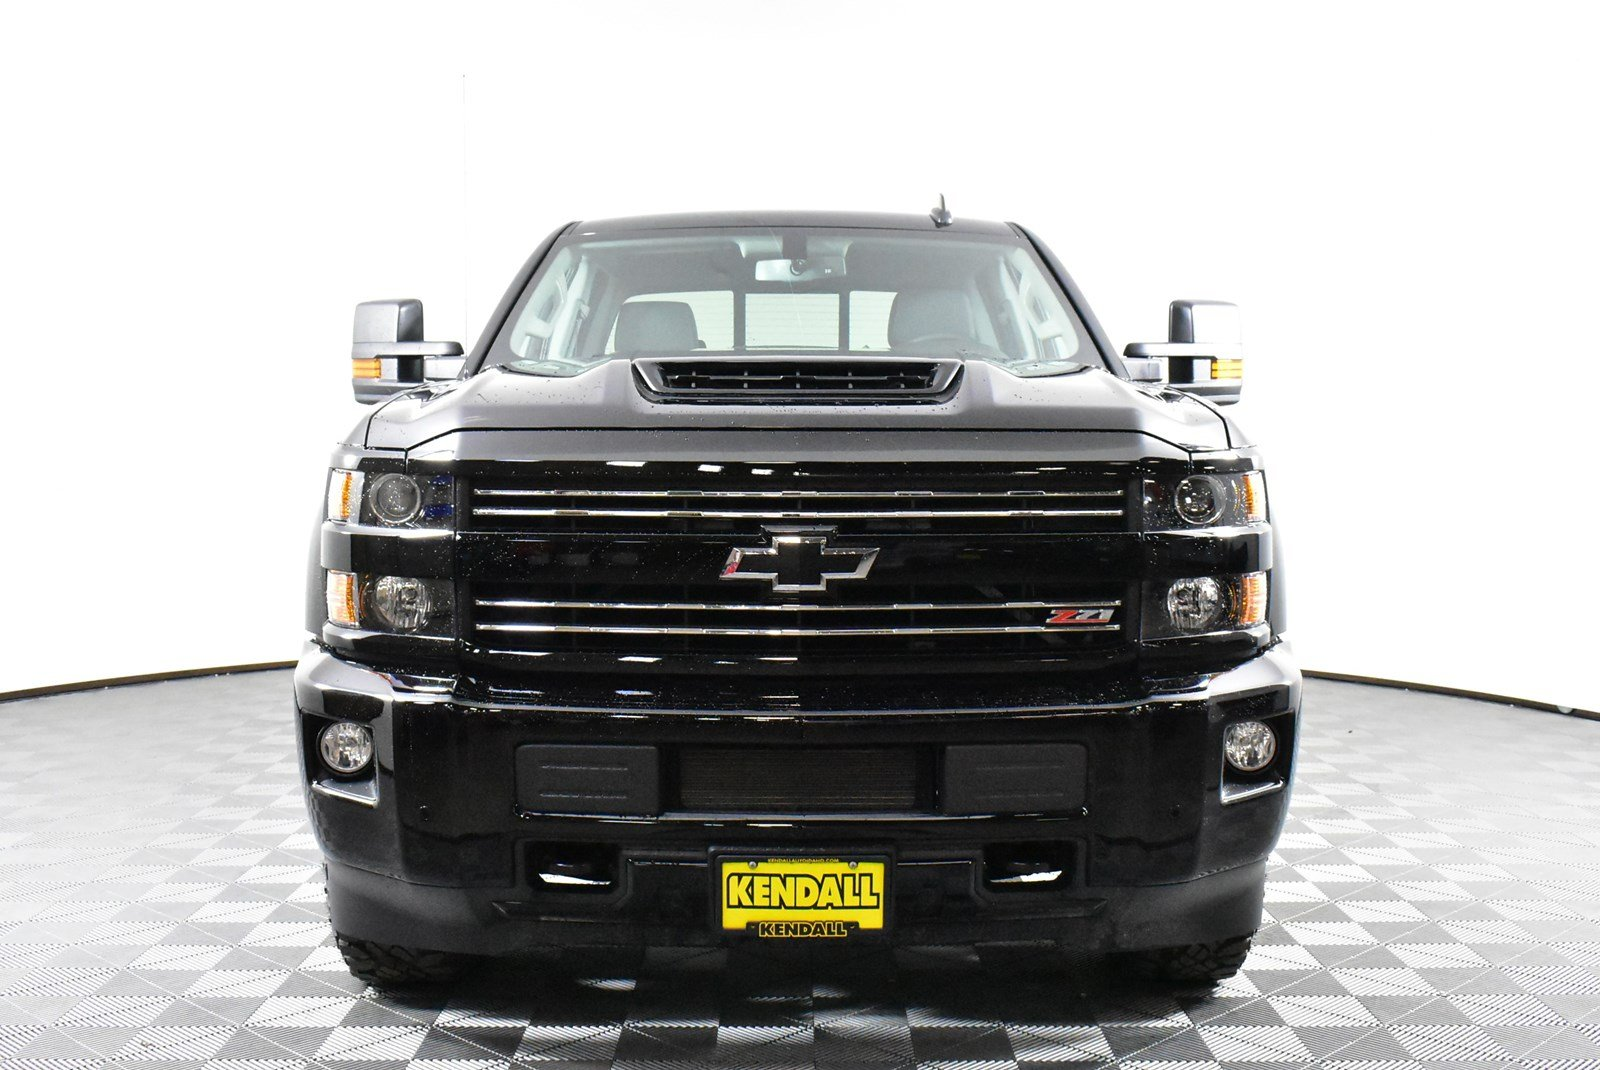 New 2019 Chevrolet Silverado 2500HD LT 4WD in Nampa #D190621 ... Silverado Camper Wiring Harness on tahoe wiring harness, camaro wiring harness, haywire wiring harness, astro van wiring harness, ford ranger wiring harness, tundra wiring harness, jeep cj wiring harness, corvette wiring harness, ram truck wiring harness, dodge wiring harness, mustang wiring harness, cobra wiring harness, k5 blazer wiring harness, easy rider wiring harness, mazda 3 wiring harness, gm wiring harness, enclave wiring harness, f150 wiring harness, gmc truck wiring harness, subaru wiring harness,